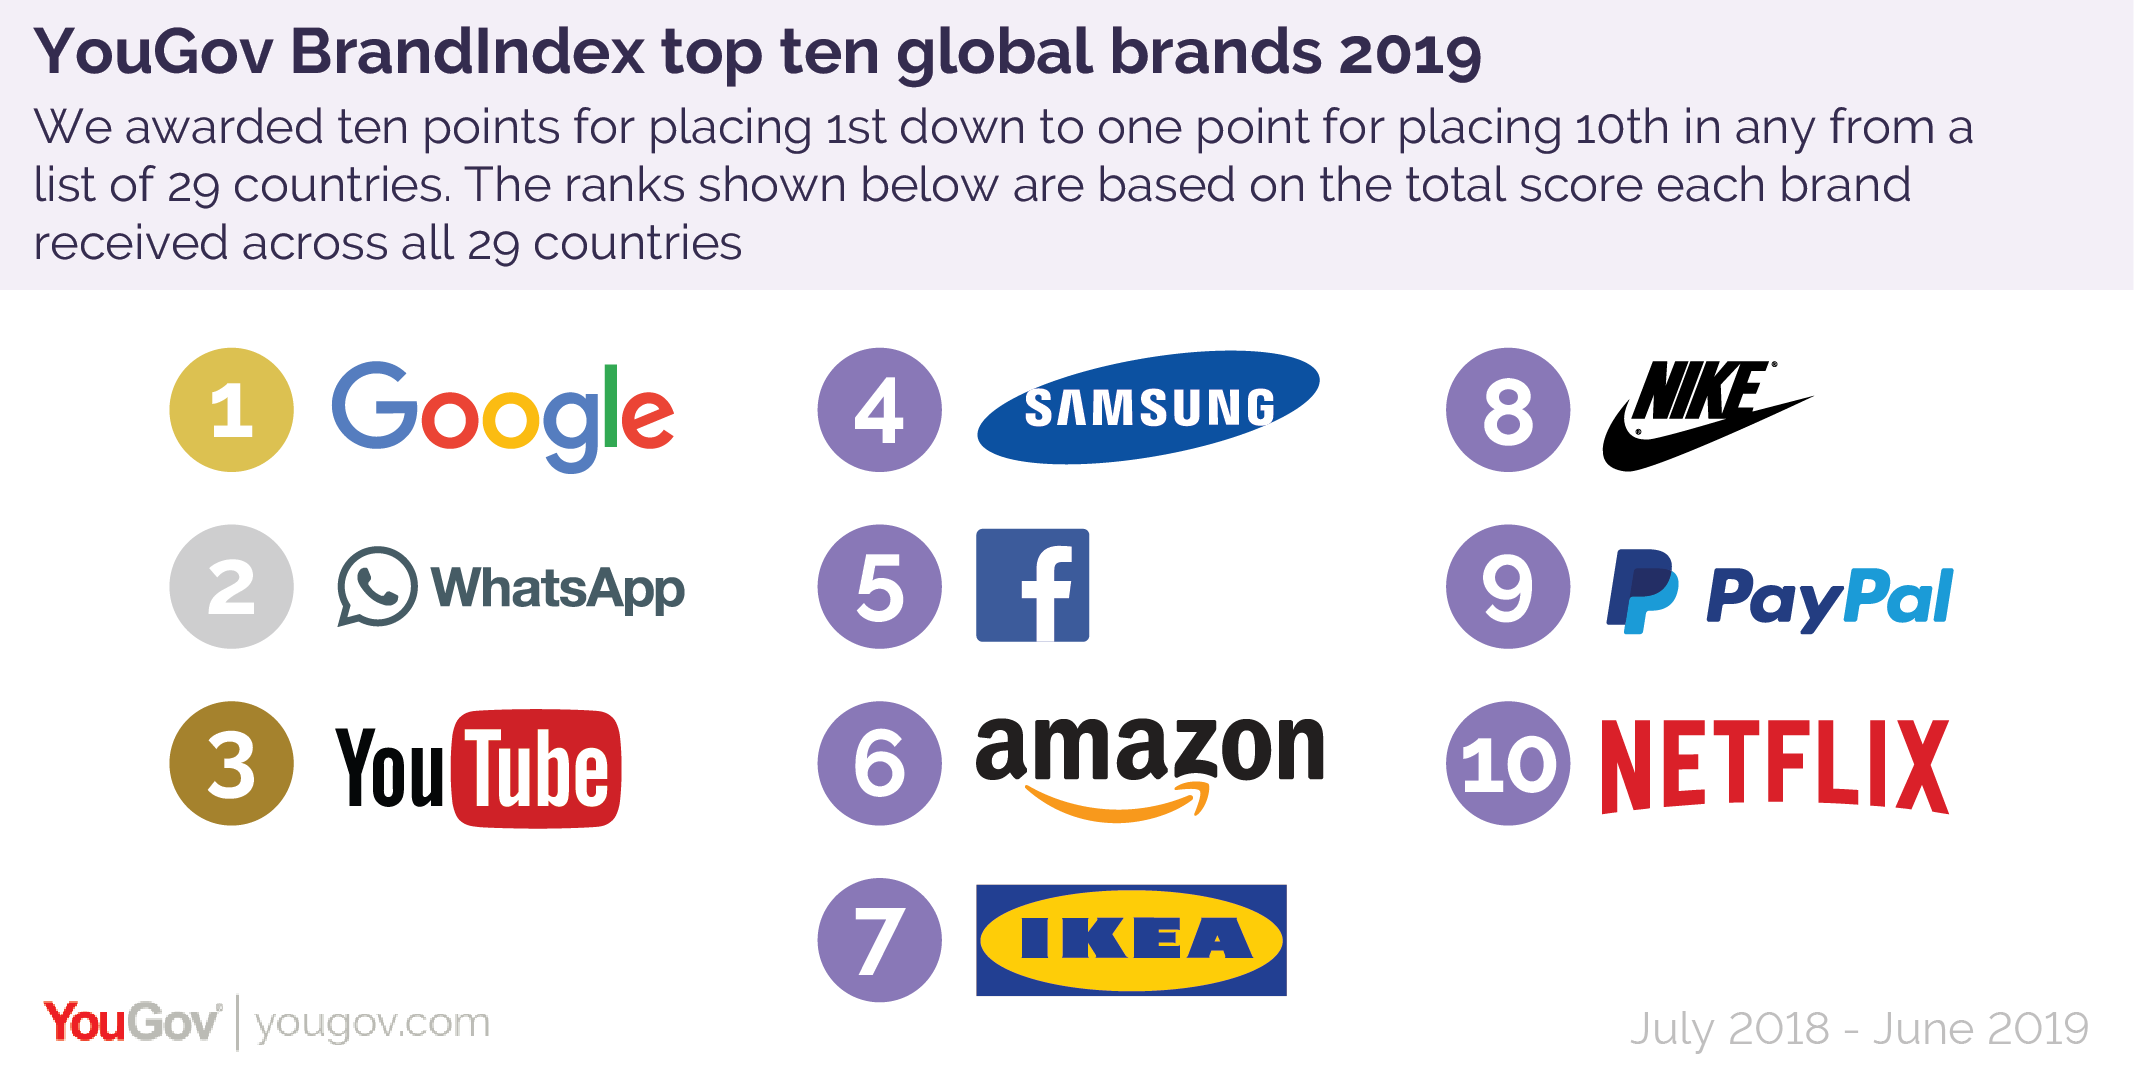 Sneakers 2018 costo moderato scegli l'ultima Nike and IKEA the only non-tech brands in top 10, says global ...